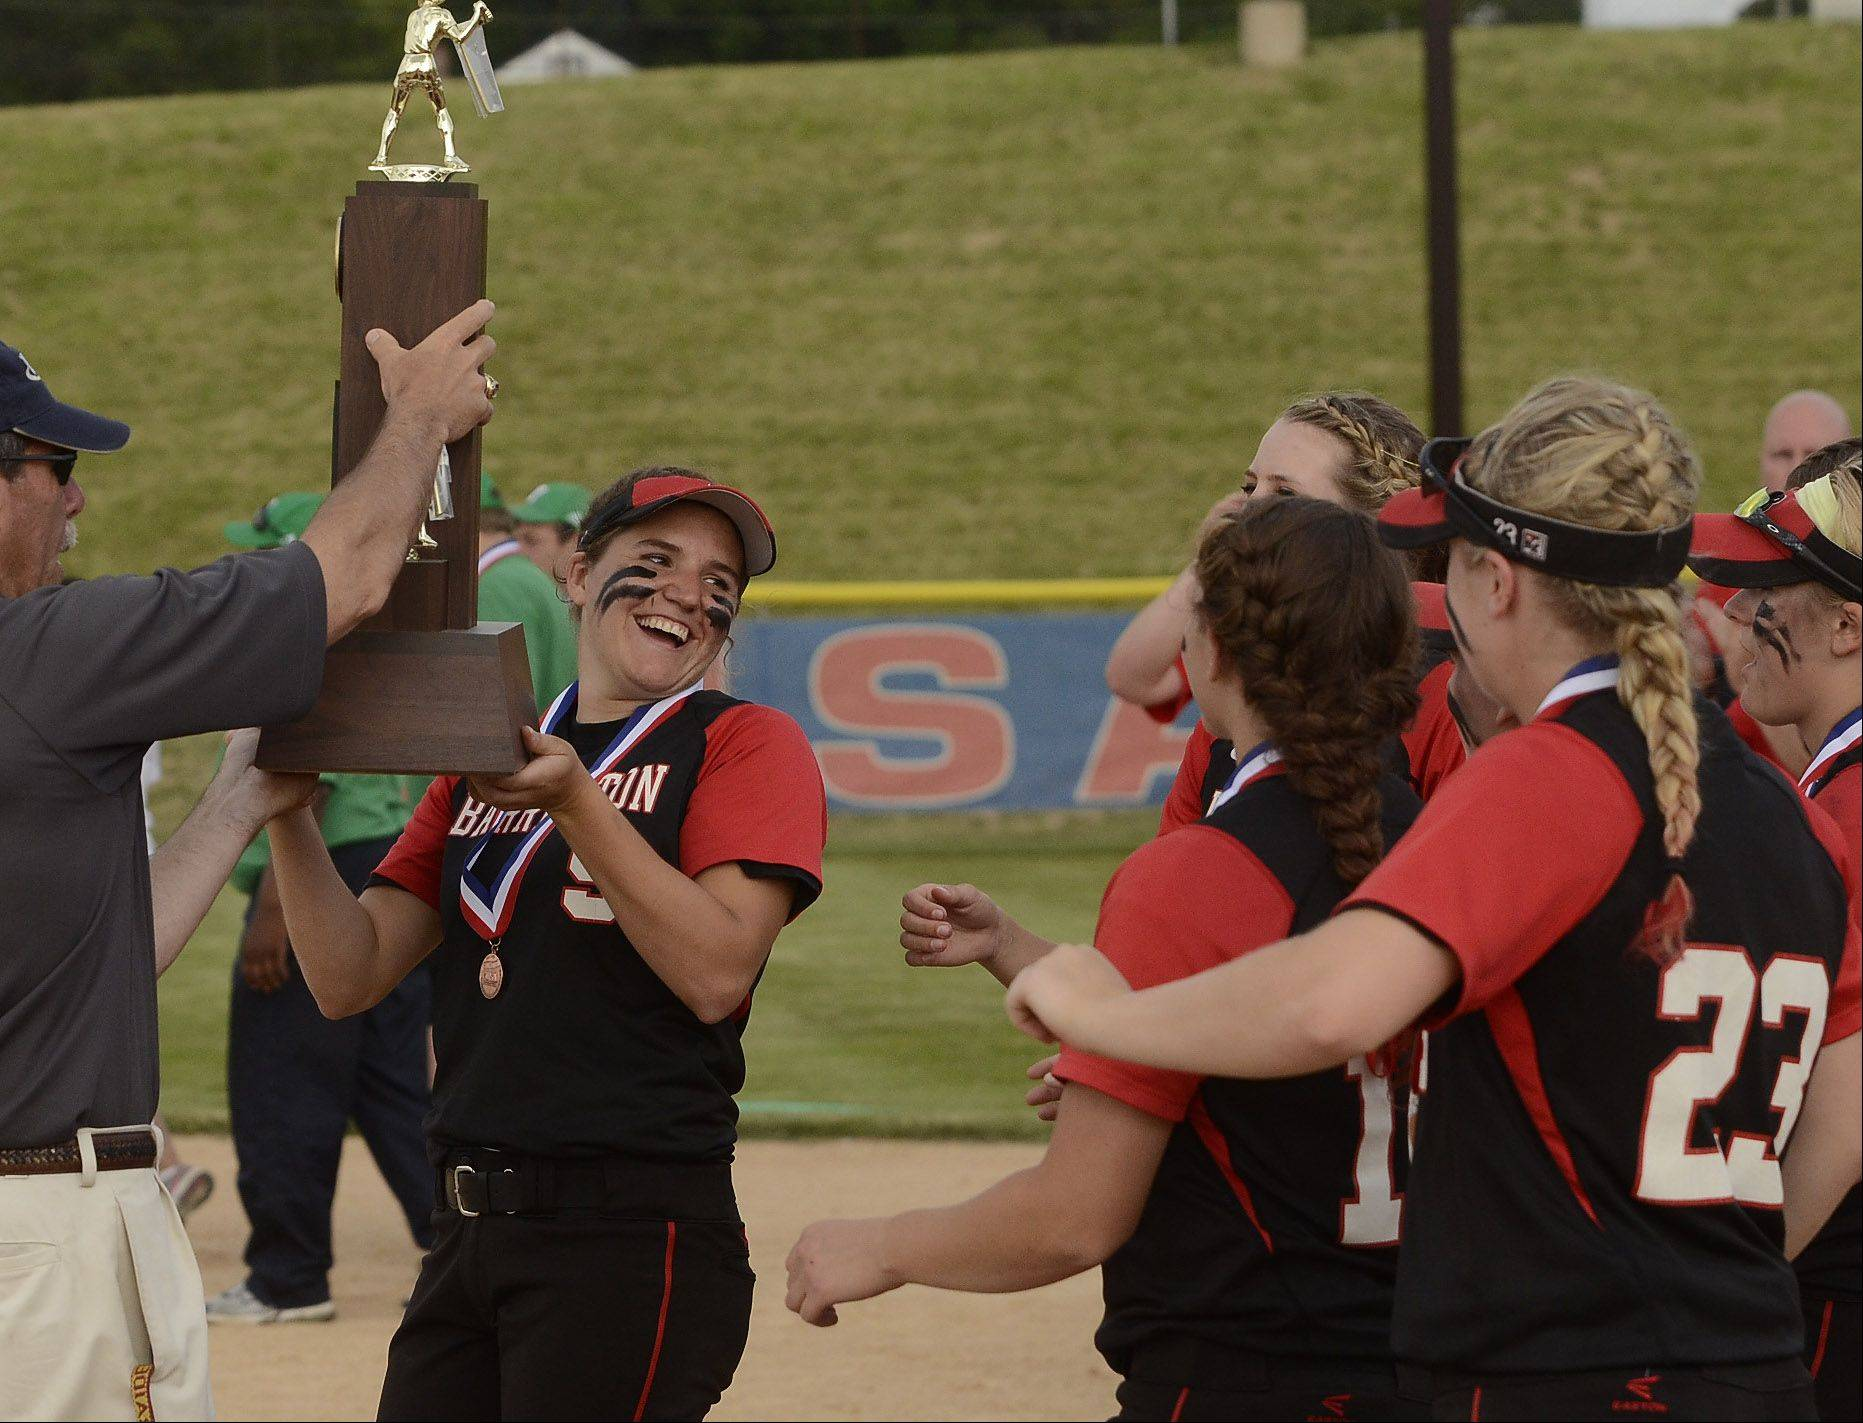 Barrington's Maggie O'Hara hoists the Class 4A third place trophy after defeating York 5-1 at the state softball tournament in East Peoria on Saturday.